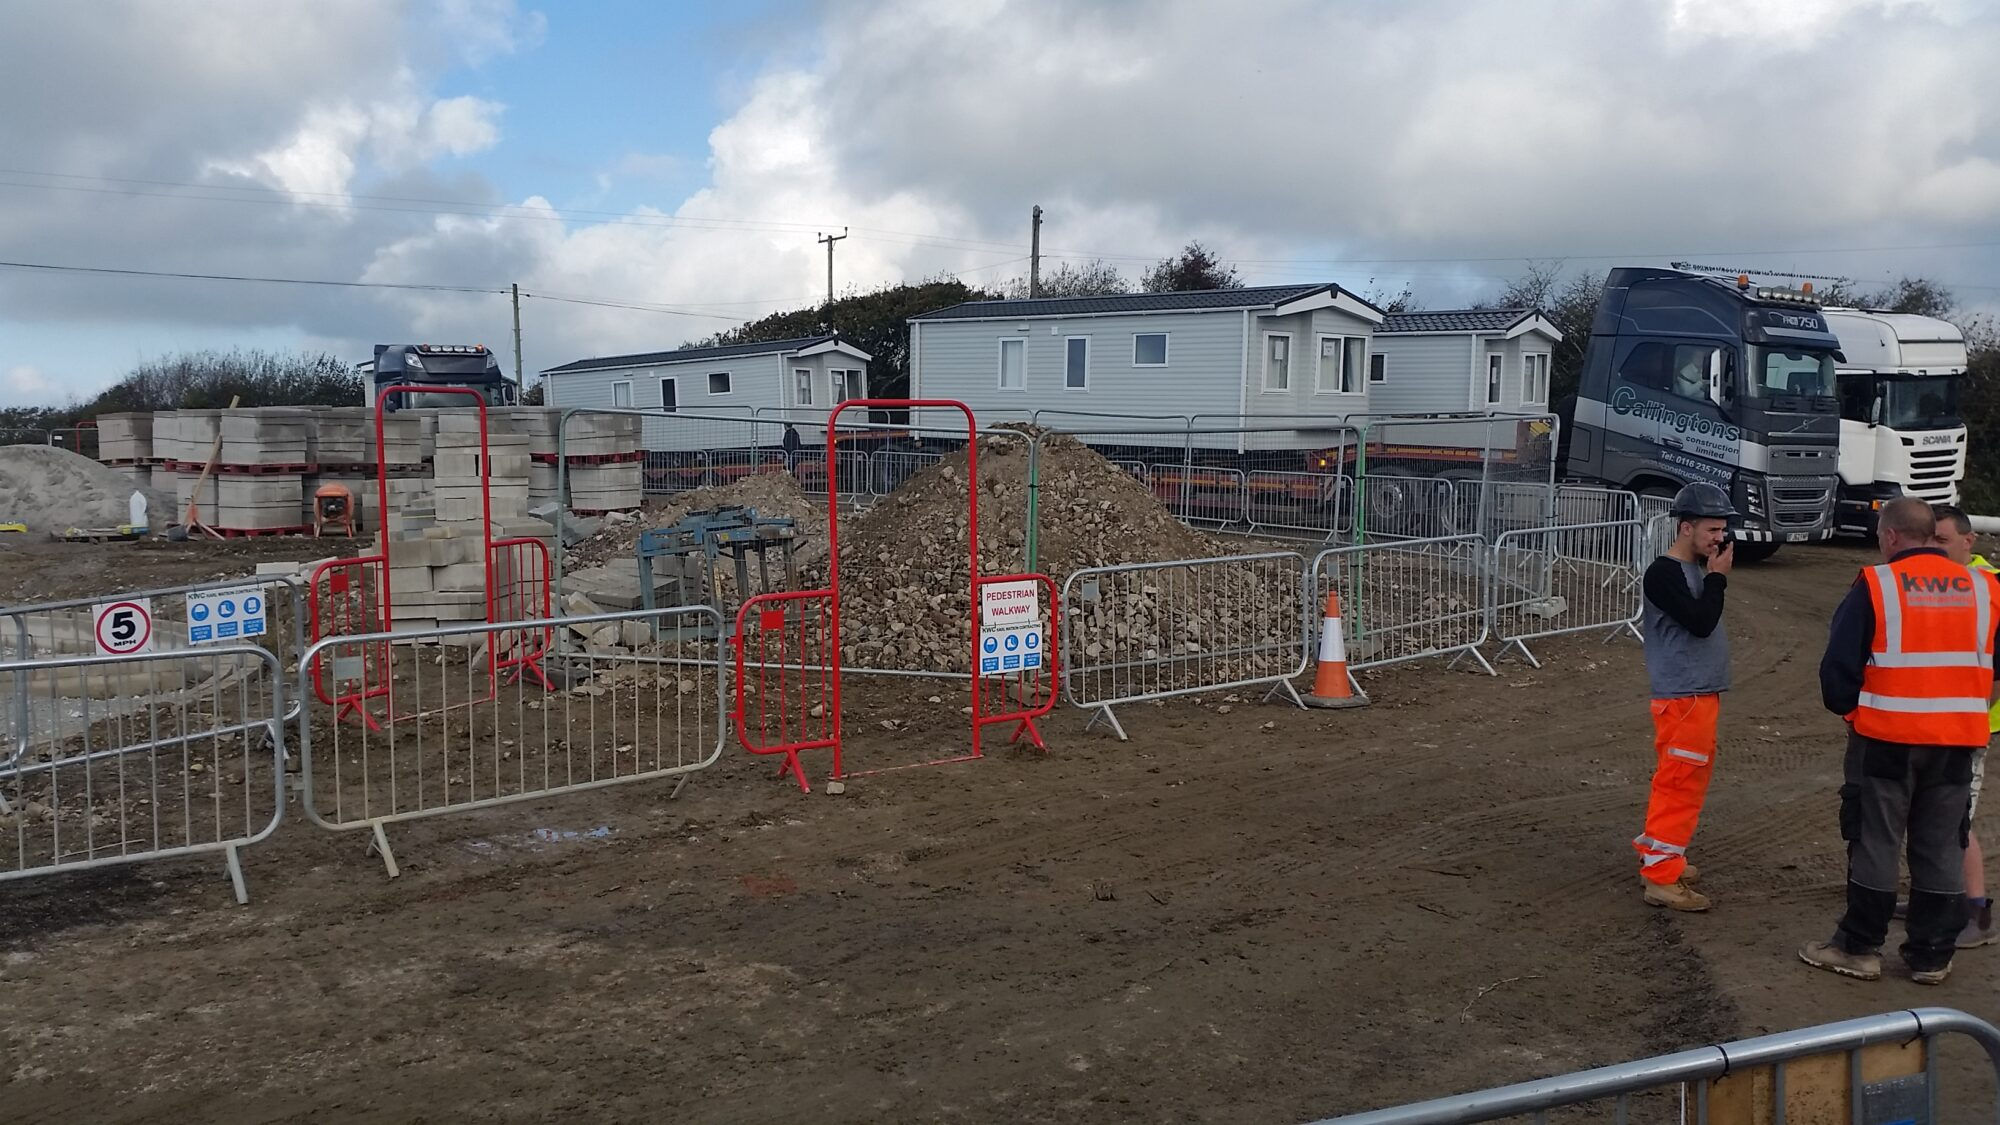 Photo of the caravans at Sandymouth during redevelopment